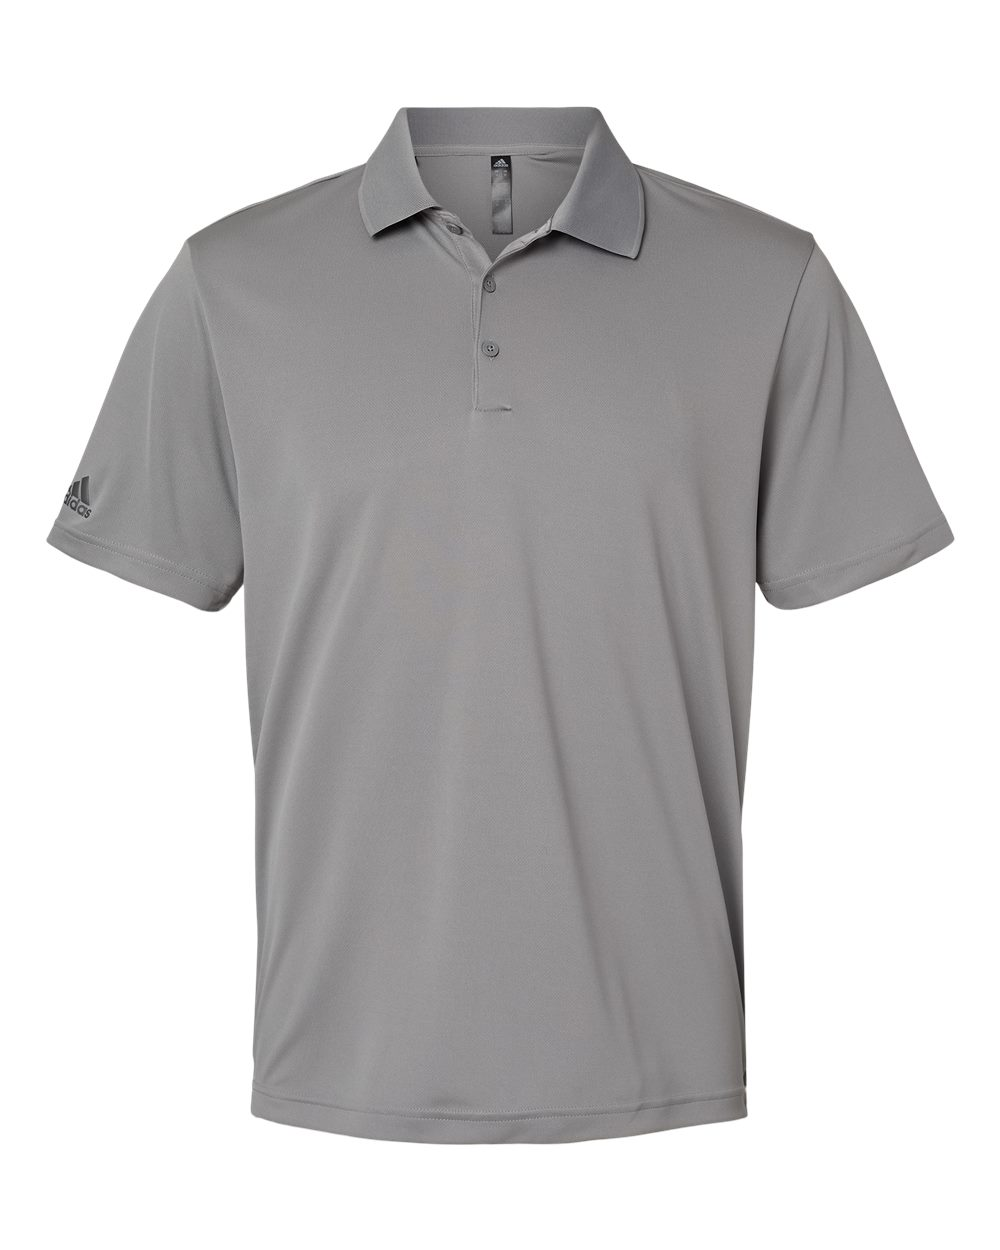 Adidas-Performance-Sport-Shirt-Polo-Button-A230-up-to-4XL miniature 25